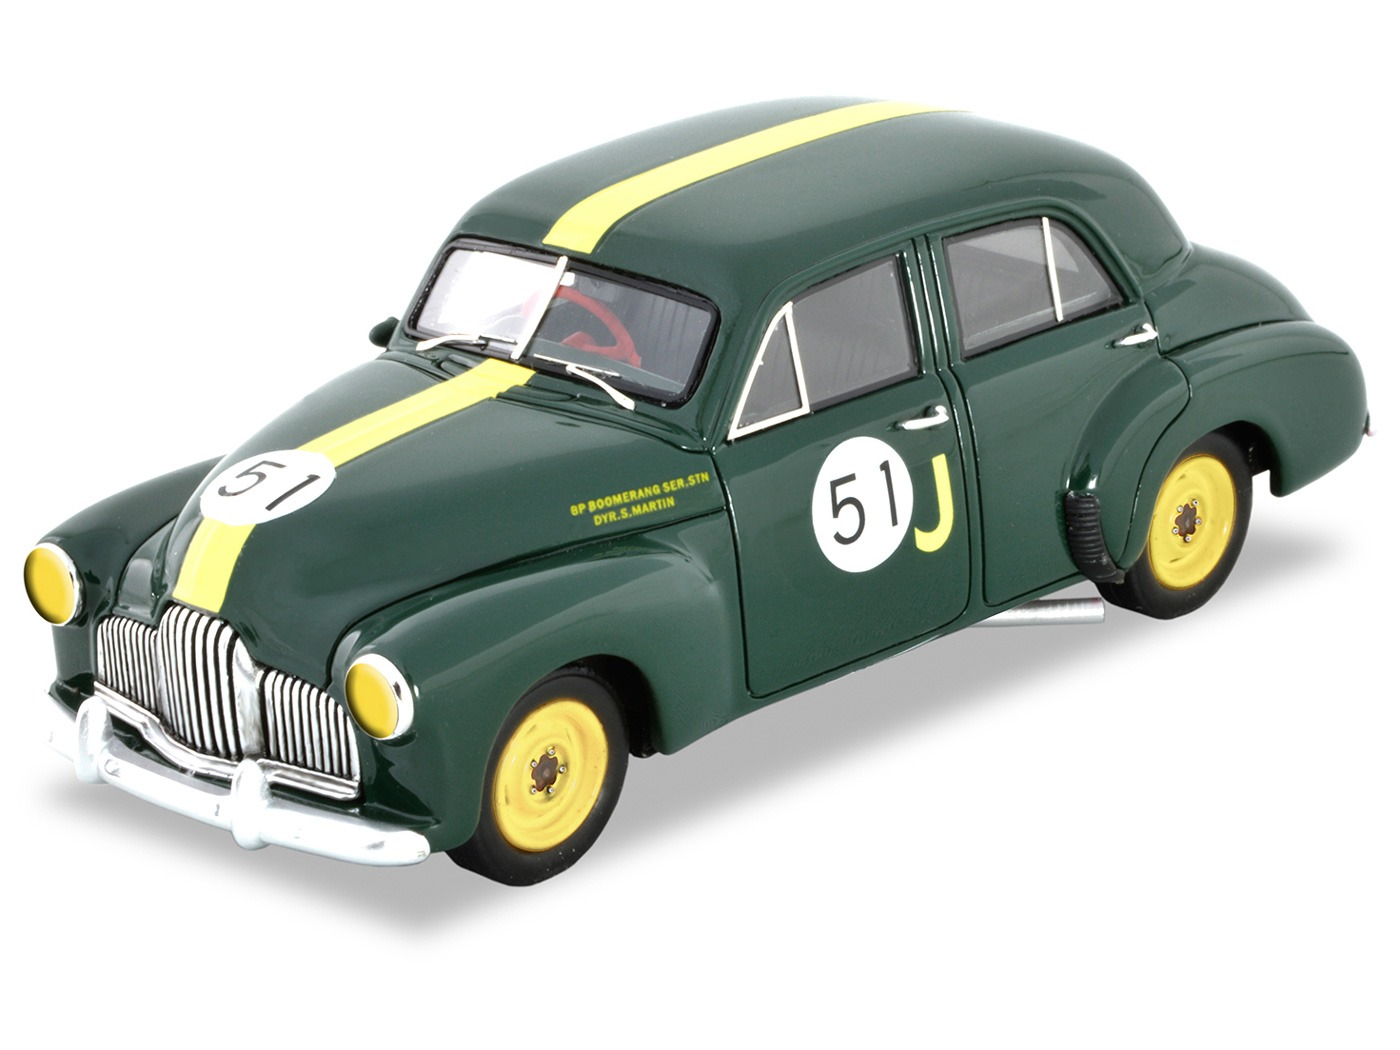 48-215 FX – British Racing Green – Spencer Martin, 51J